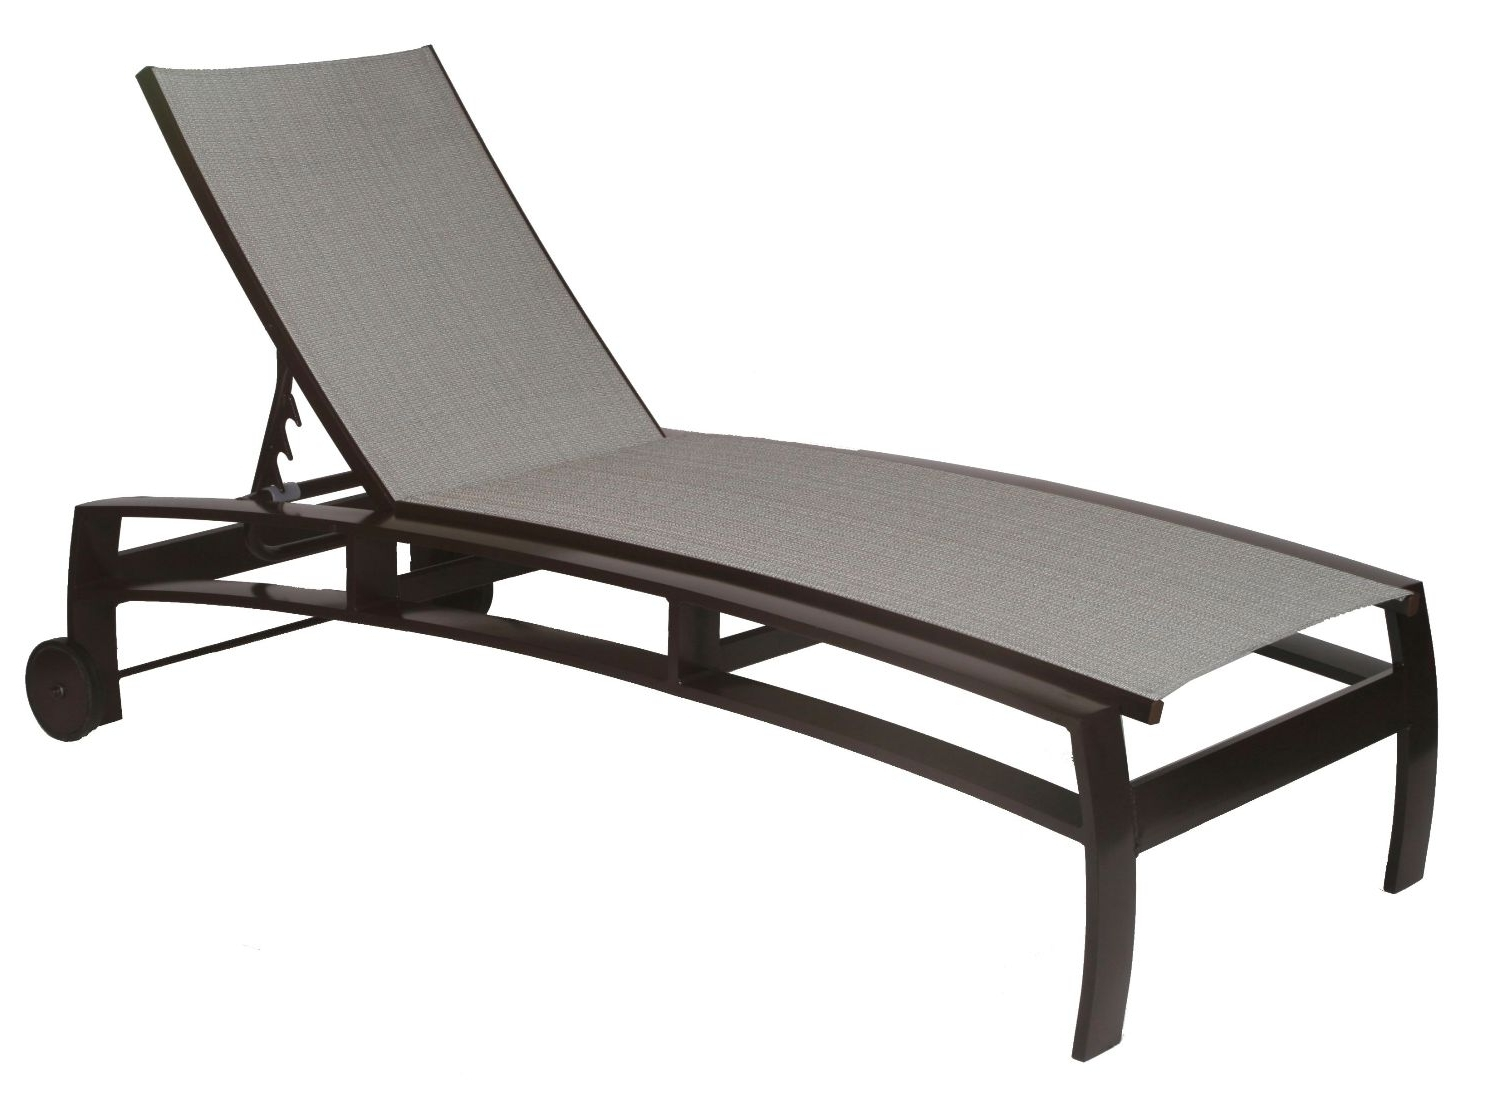 Mesh Lounge Chair Armframe – 438 Oalias Design Alberto Meda Intended For Fashionable Outdoor Mesh Chaise Lounge Chairs (View 3 of 15)